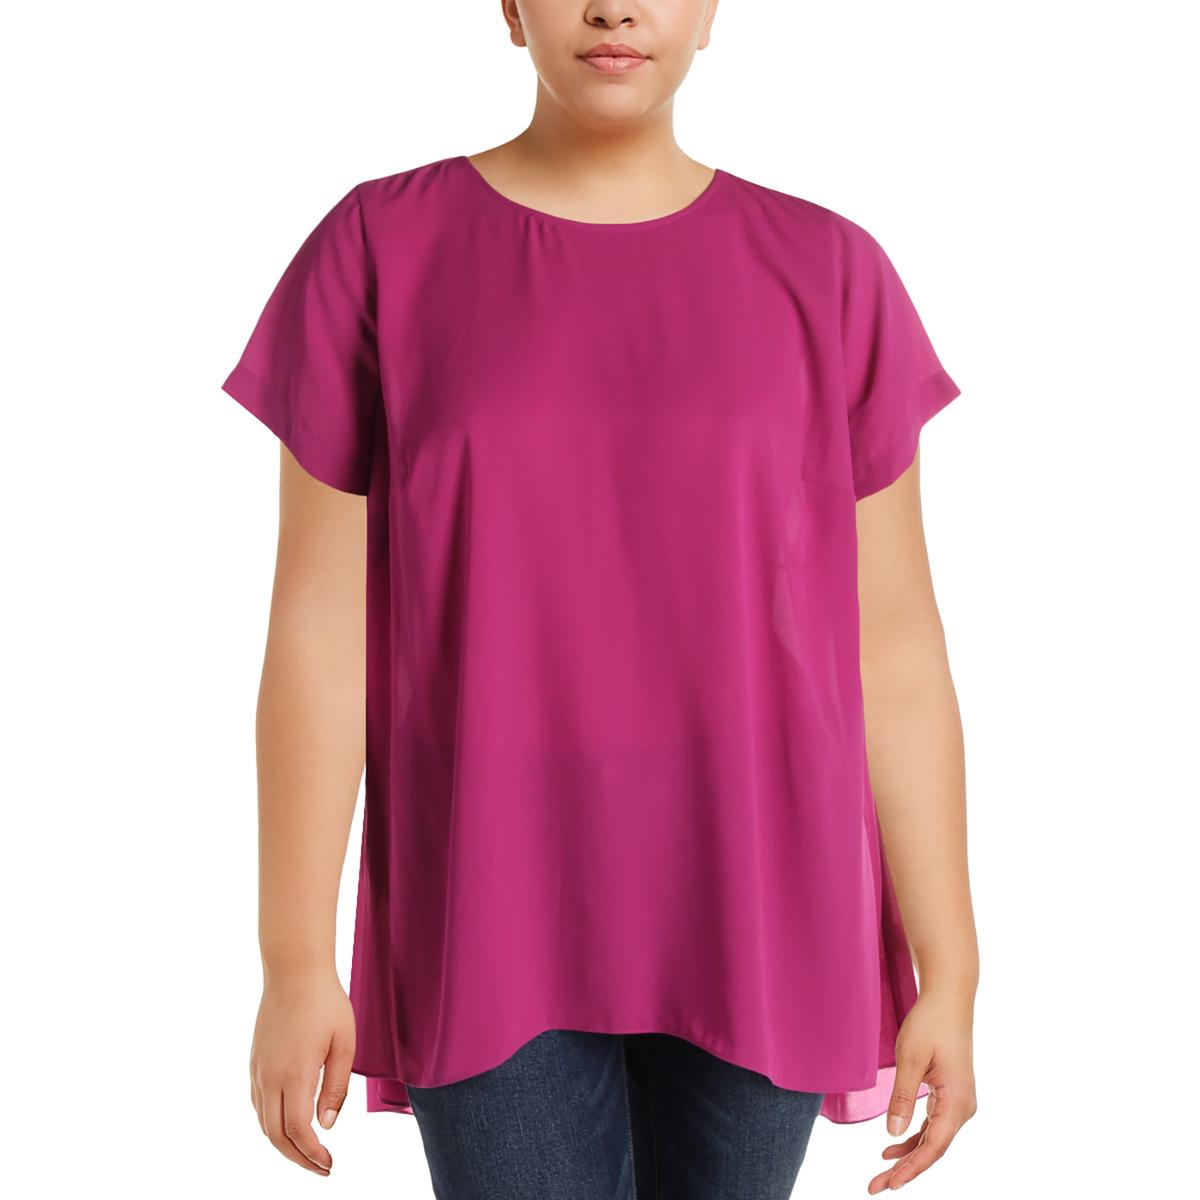 e834c948a4b85d Details about Vince Camuto Womens Hi-Low Sheer Short Sleeves Casual Top  Shirt Plus BHFO 6558